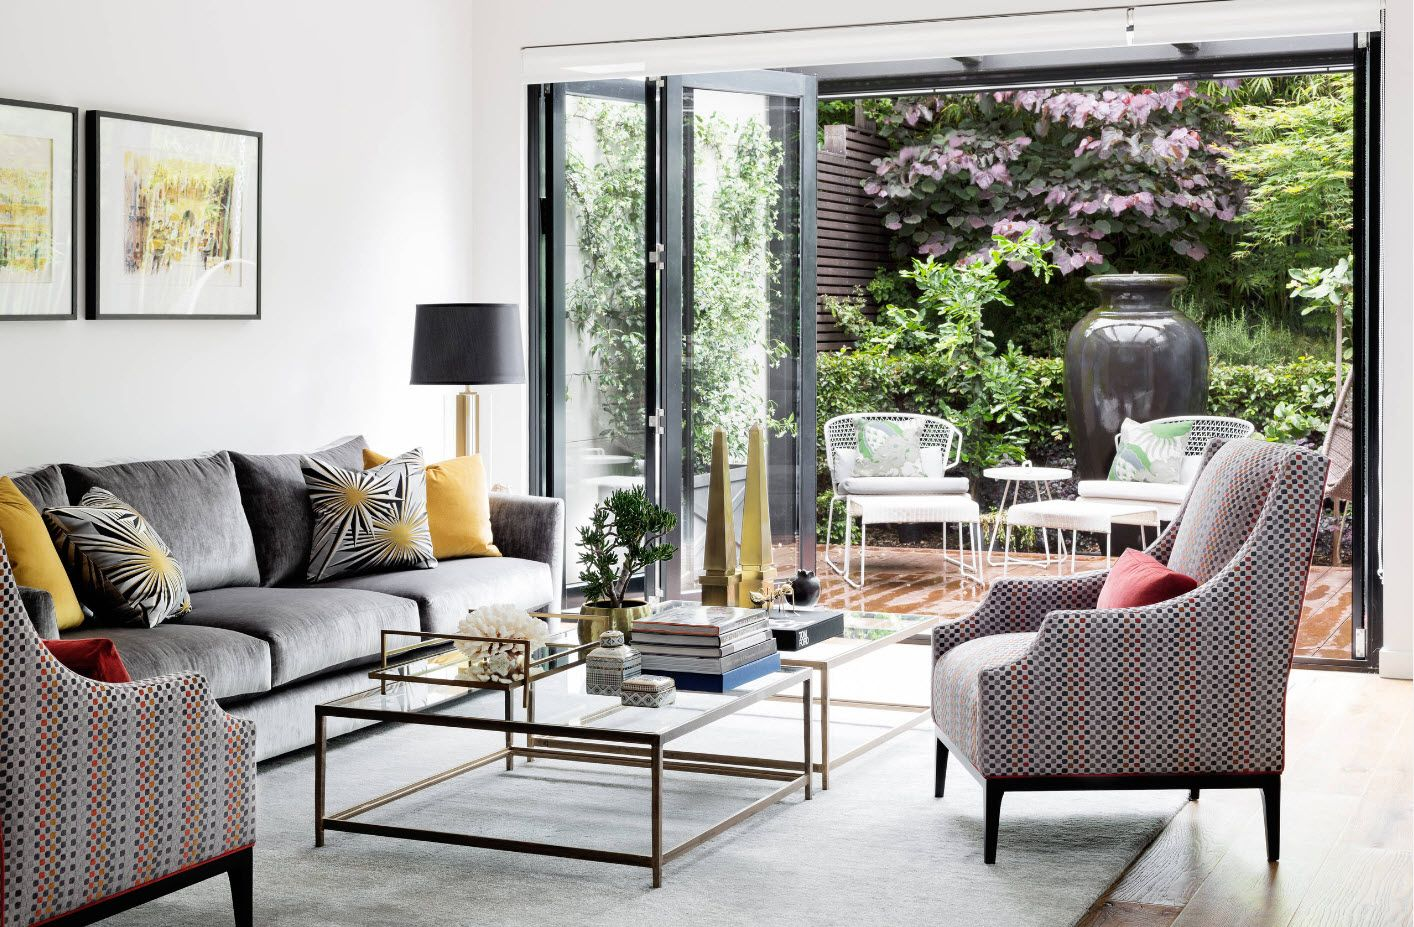 Modern Cottage Interior Design Tips. Trends and Features 2017. great glass coffee table in the living zone with panoramic windows